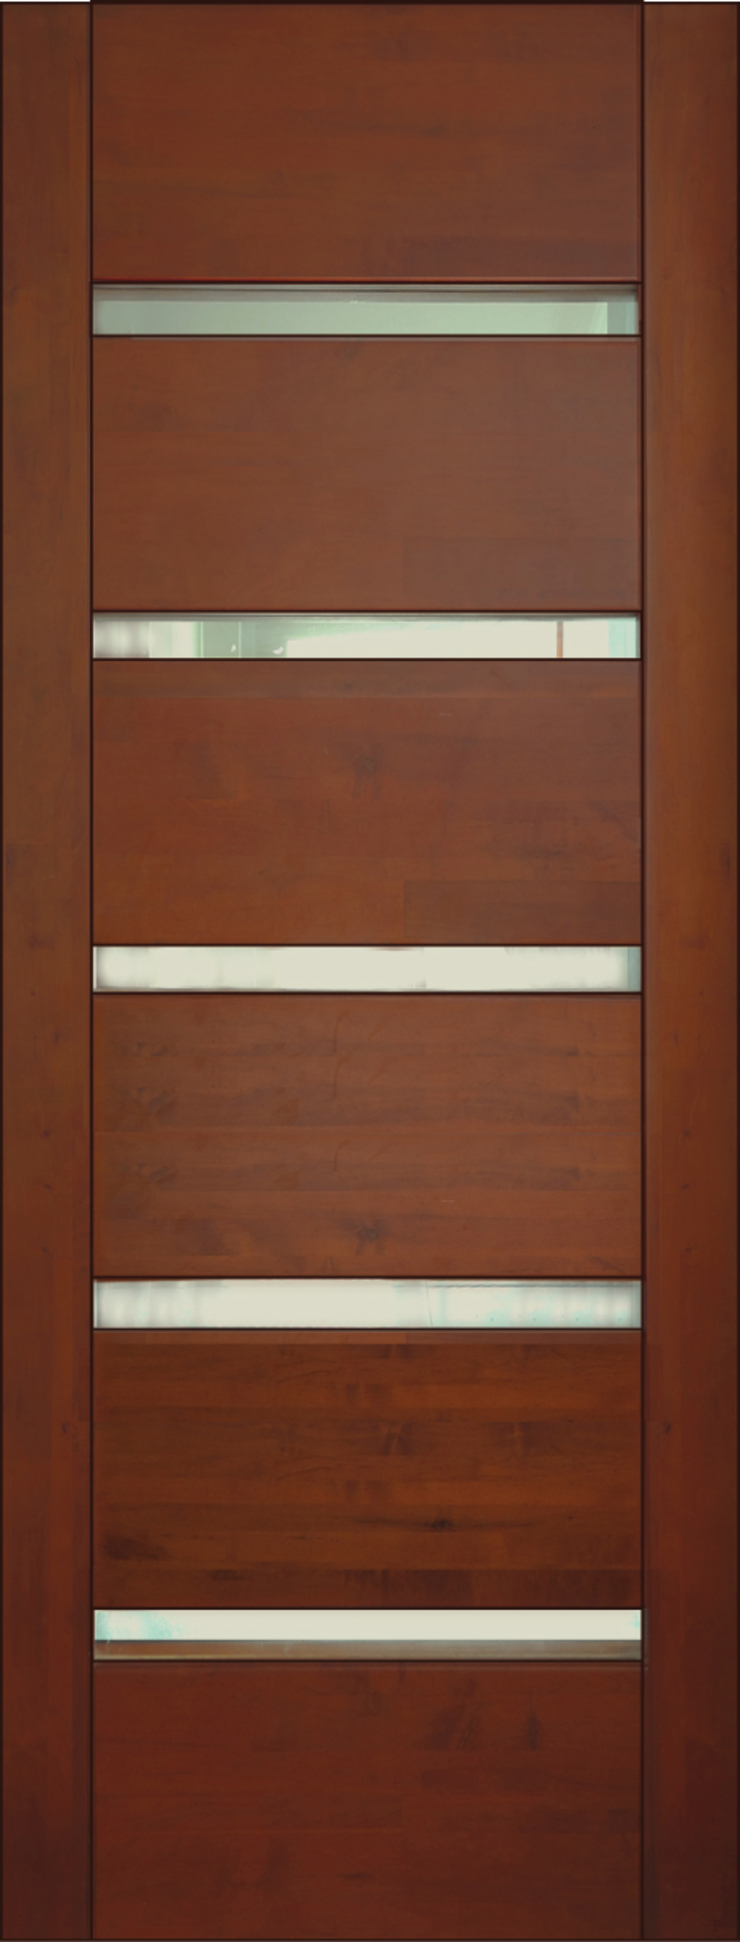 Ignisterra S.A. Modern windows & doors Wood Brown